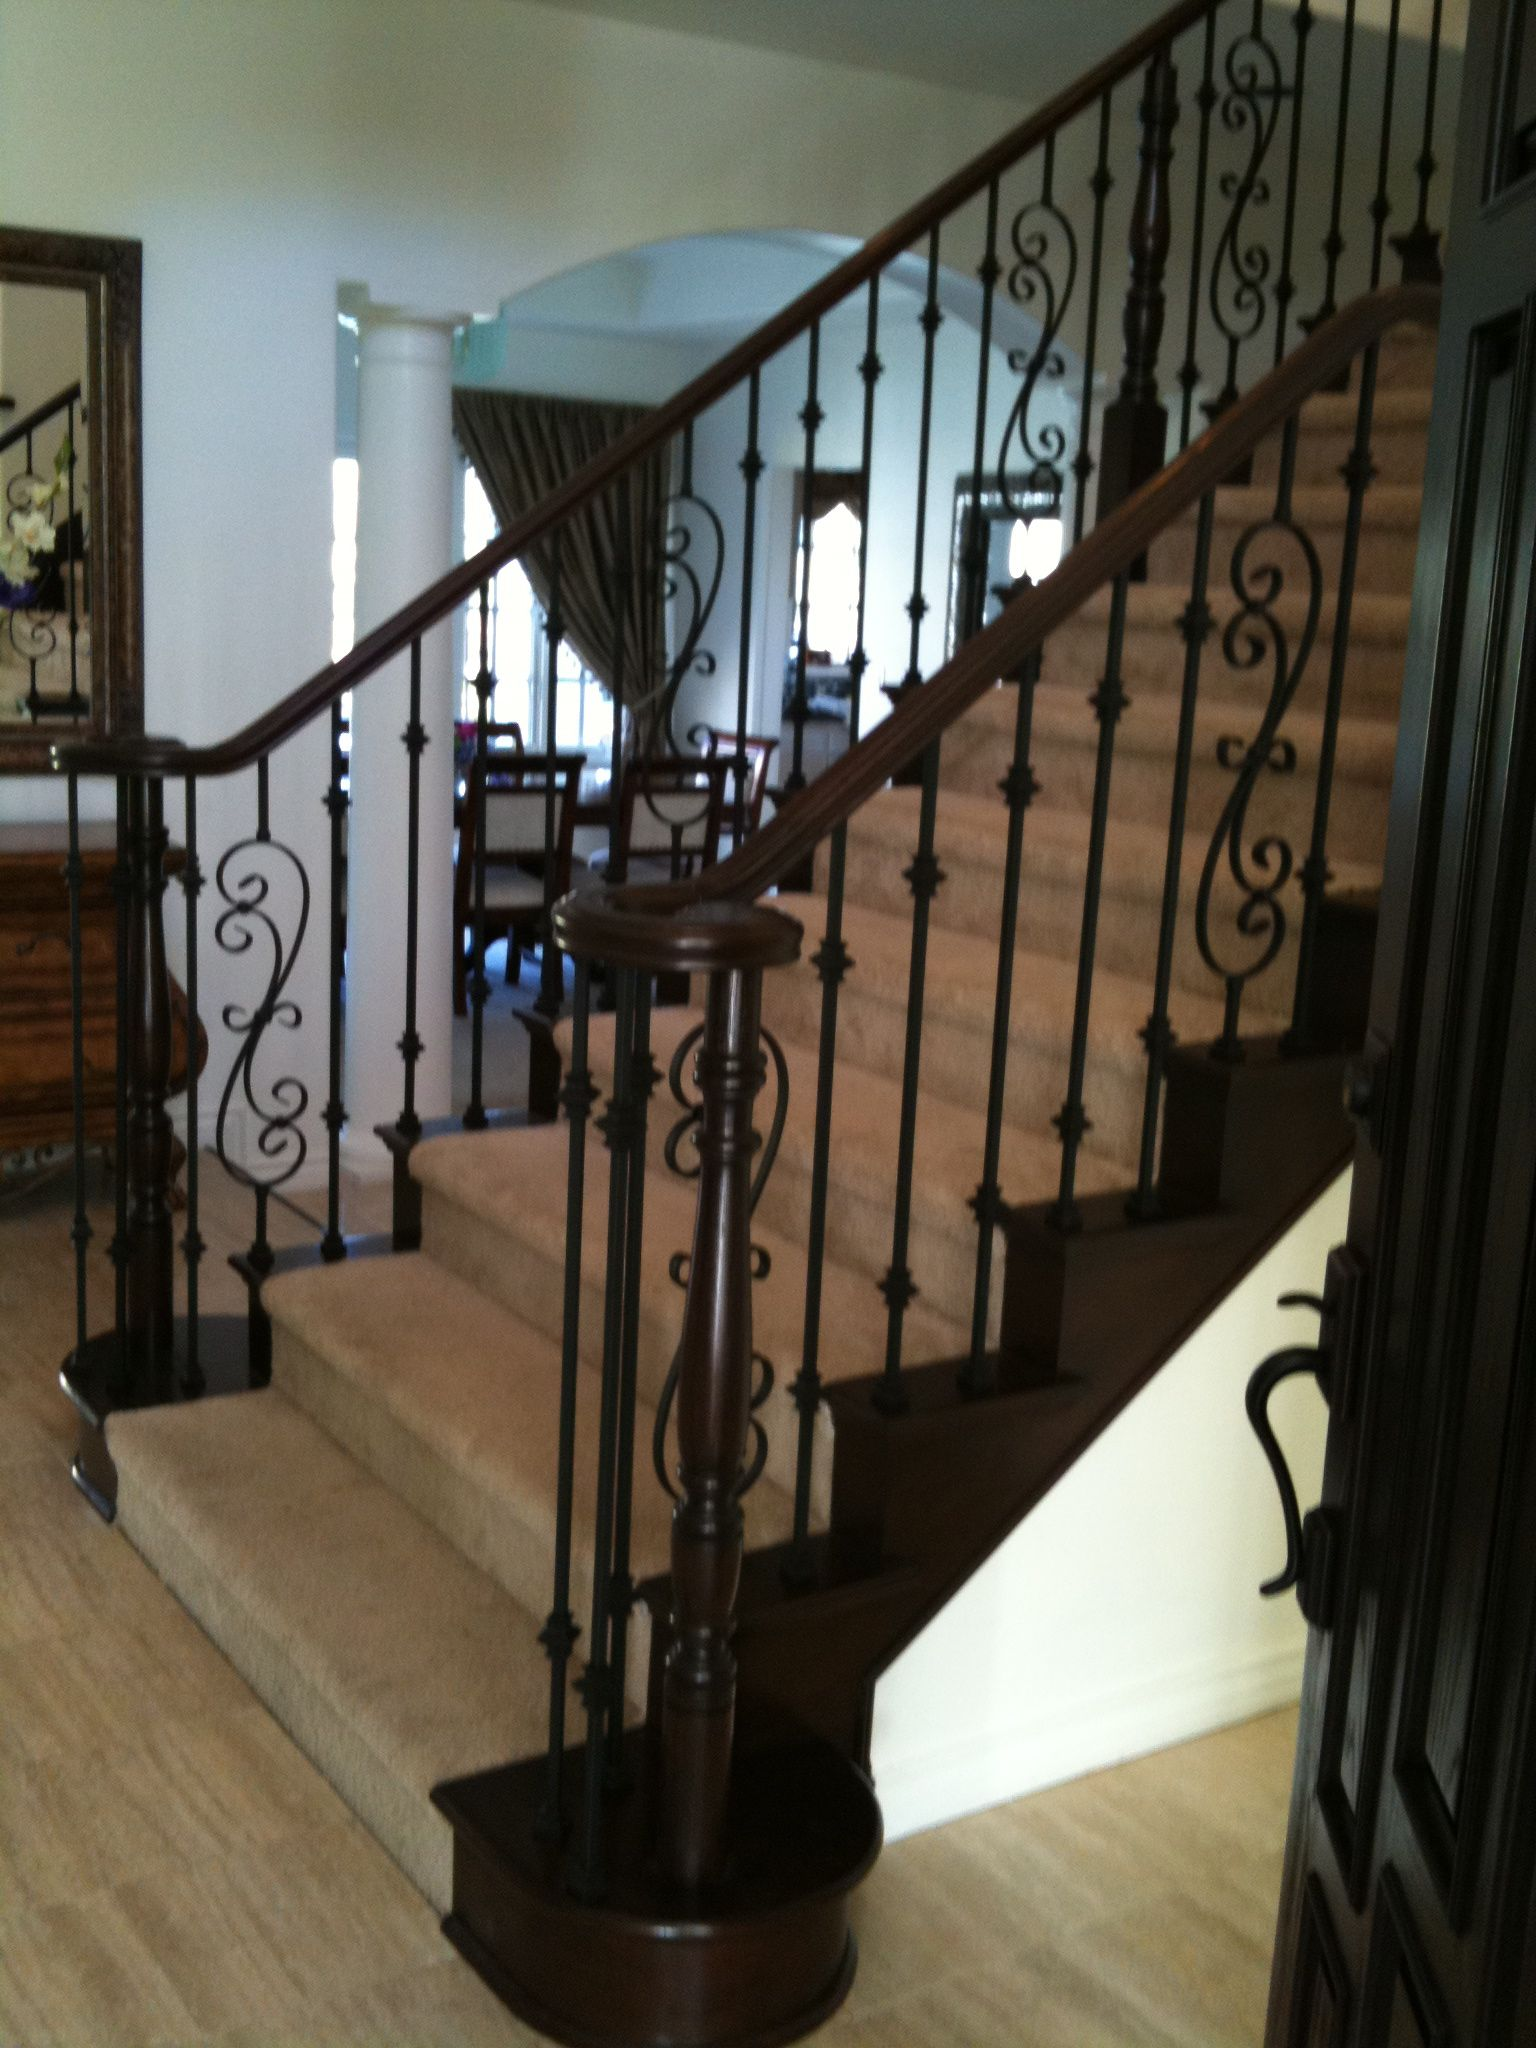 Exceptionnel Charming Wrought Iron Balusters For Elegant Interior Staircase Design:  Appealing Dark Wrought Iron Balusters With